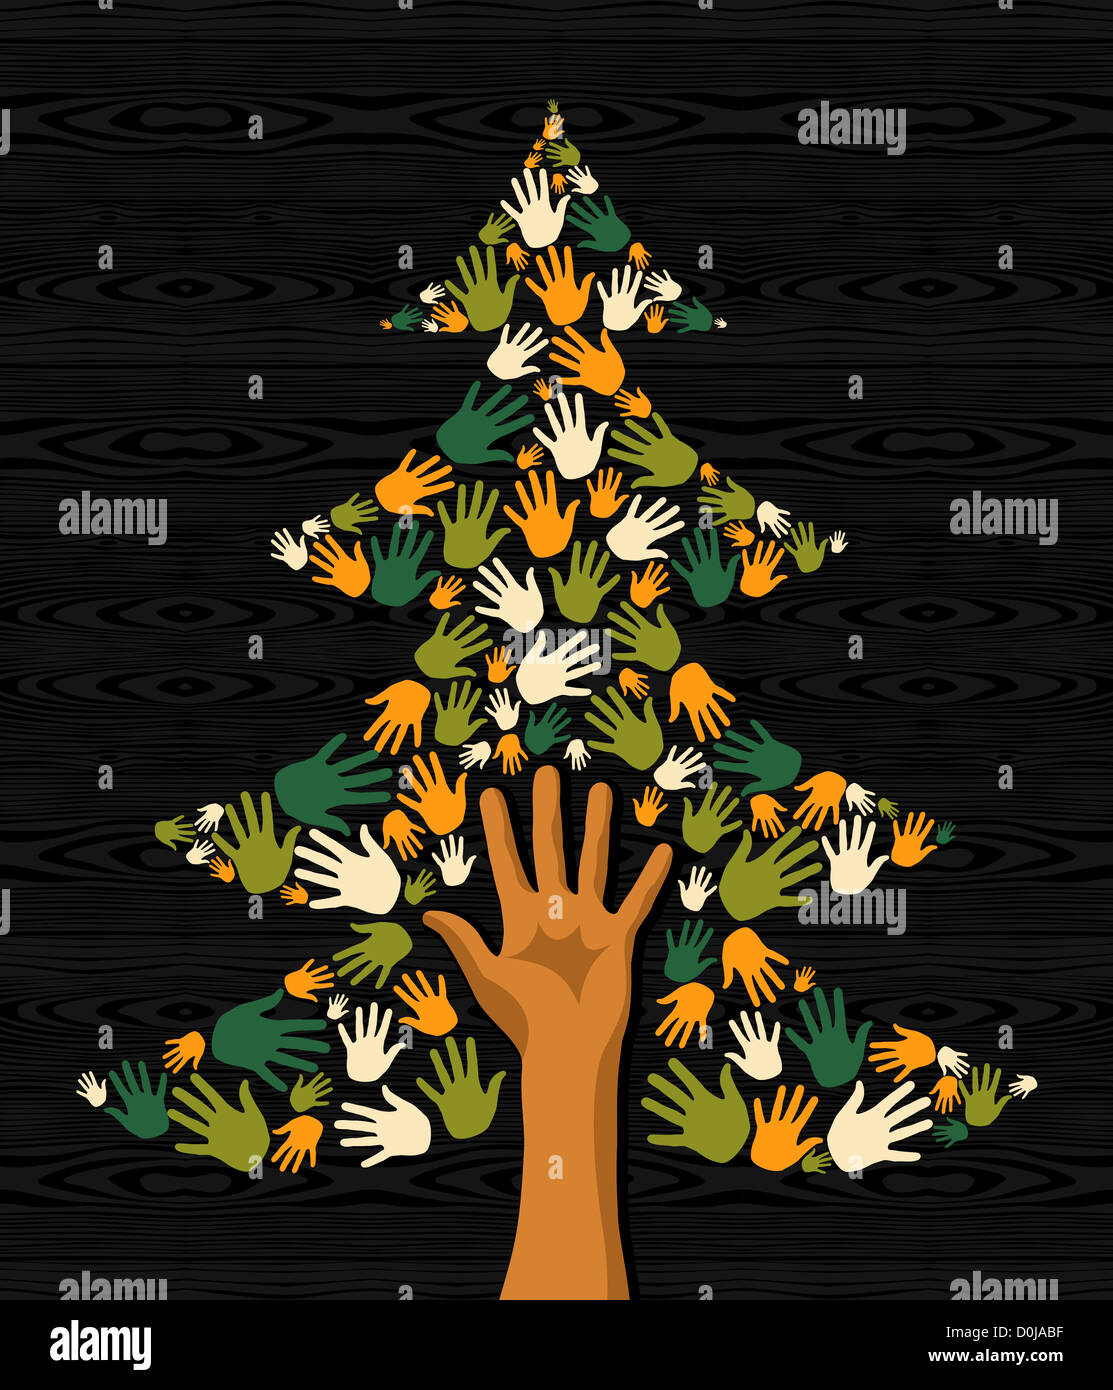 Diversity eco friendly christmas tree hands background for diversity eco friendly christmas tree hands background for greeting card vector illustration layered for easy kristyandbryce Images